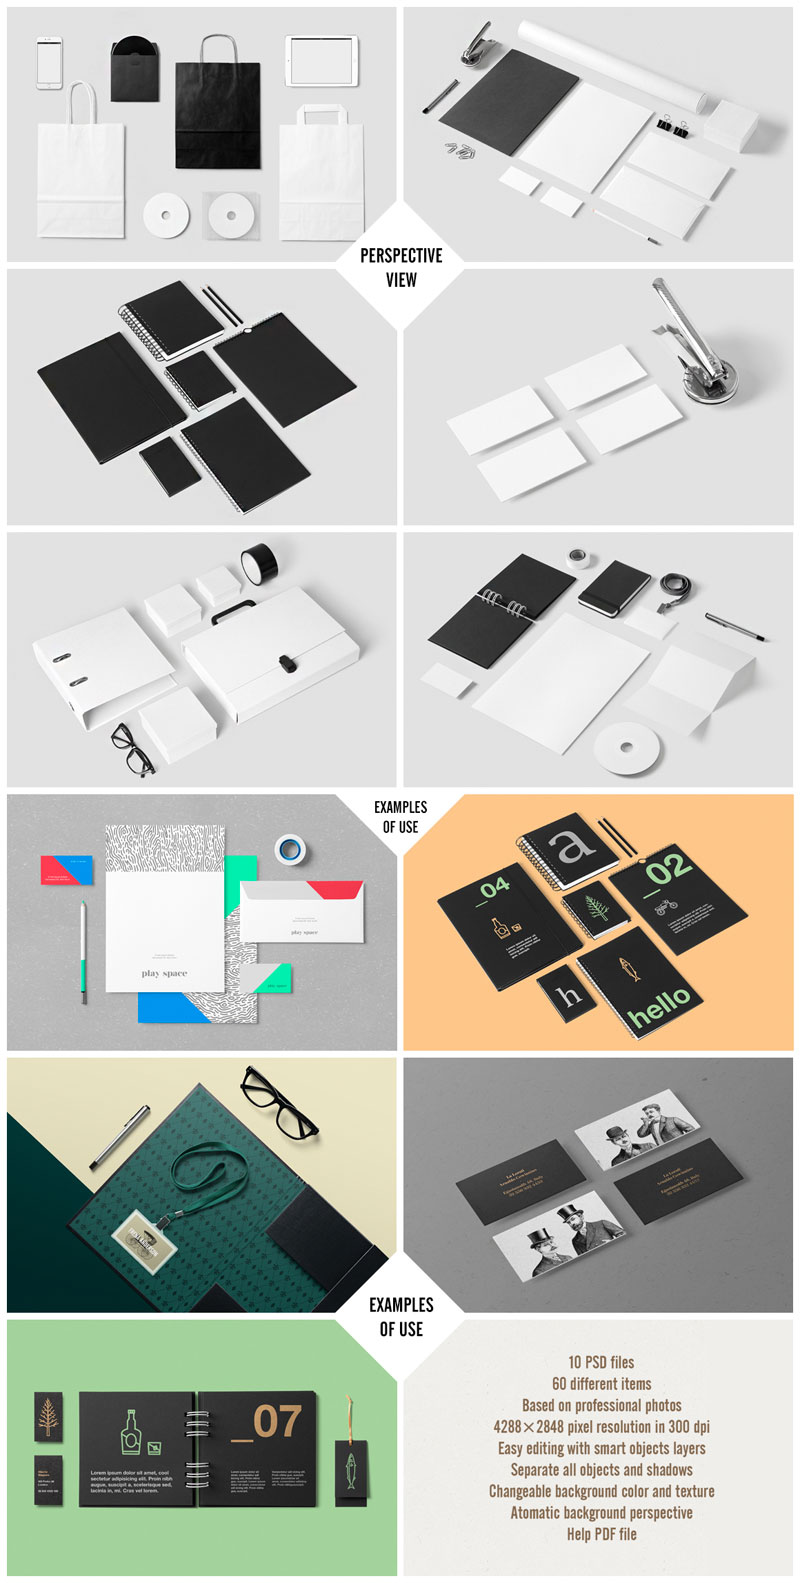 The corporate stationery mock-up set by forgraphic™ - Perspective view and examples of use.